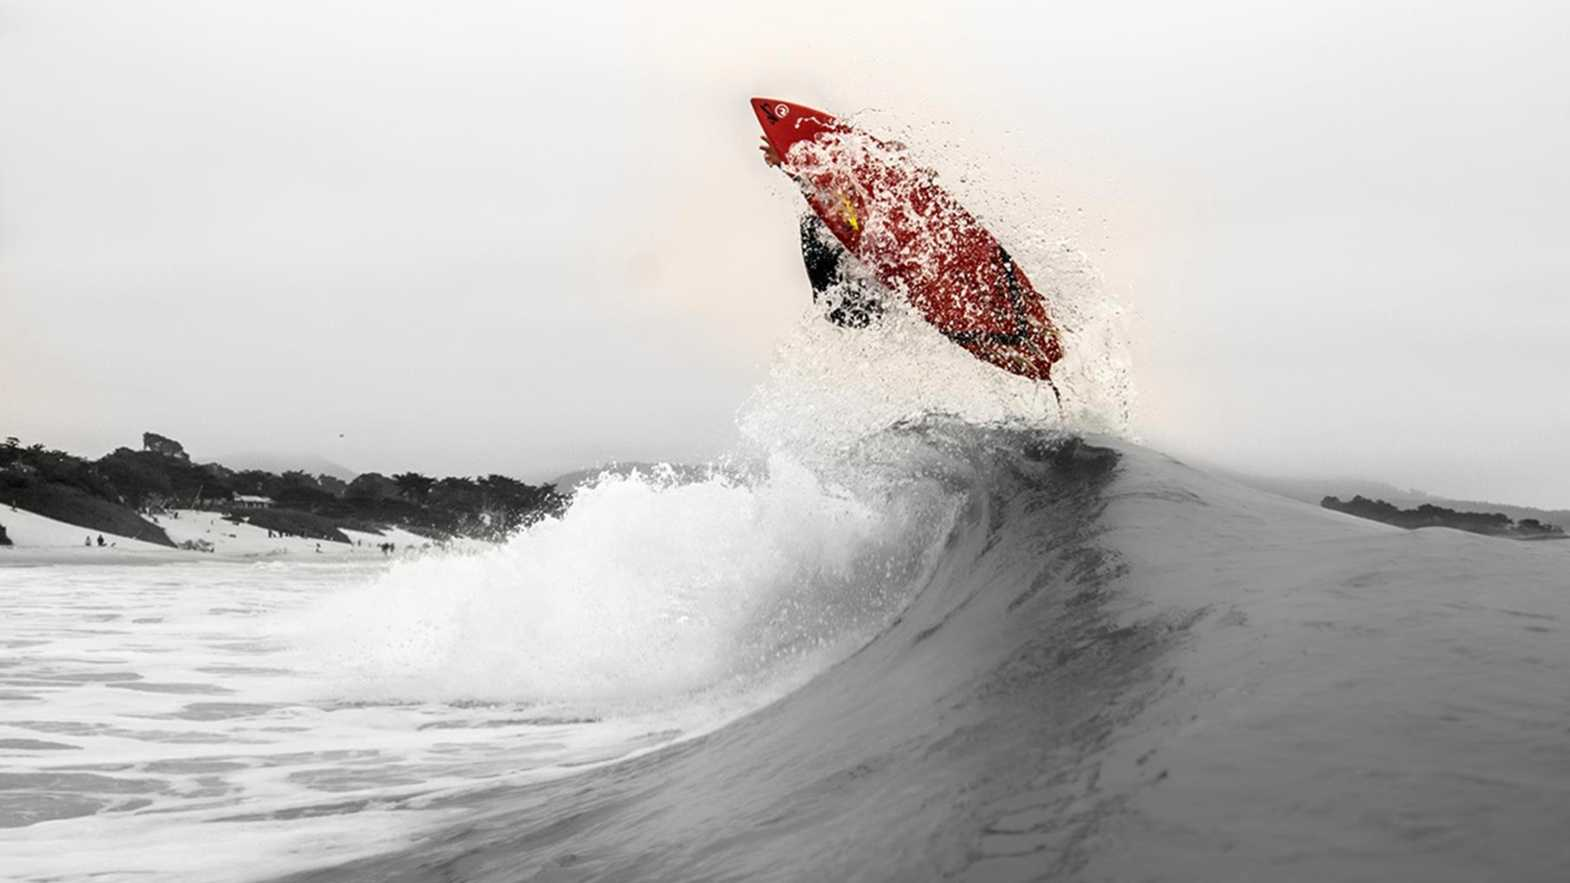 Surfer Wayne Kelly gets some air while surfing off the Monterey Peninsula.